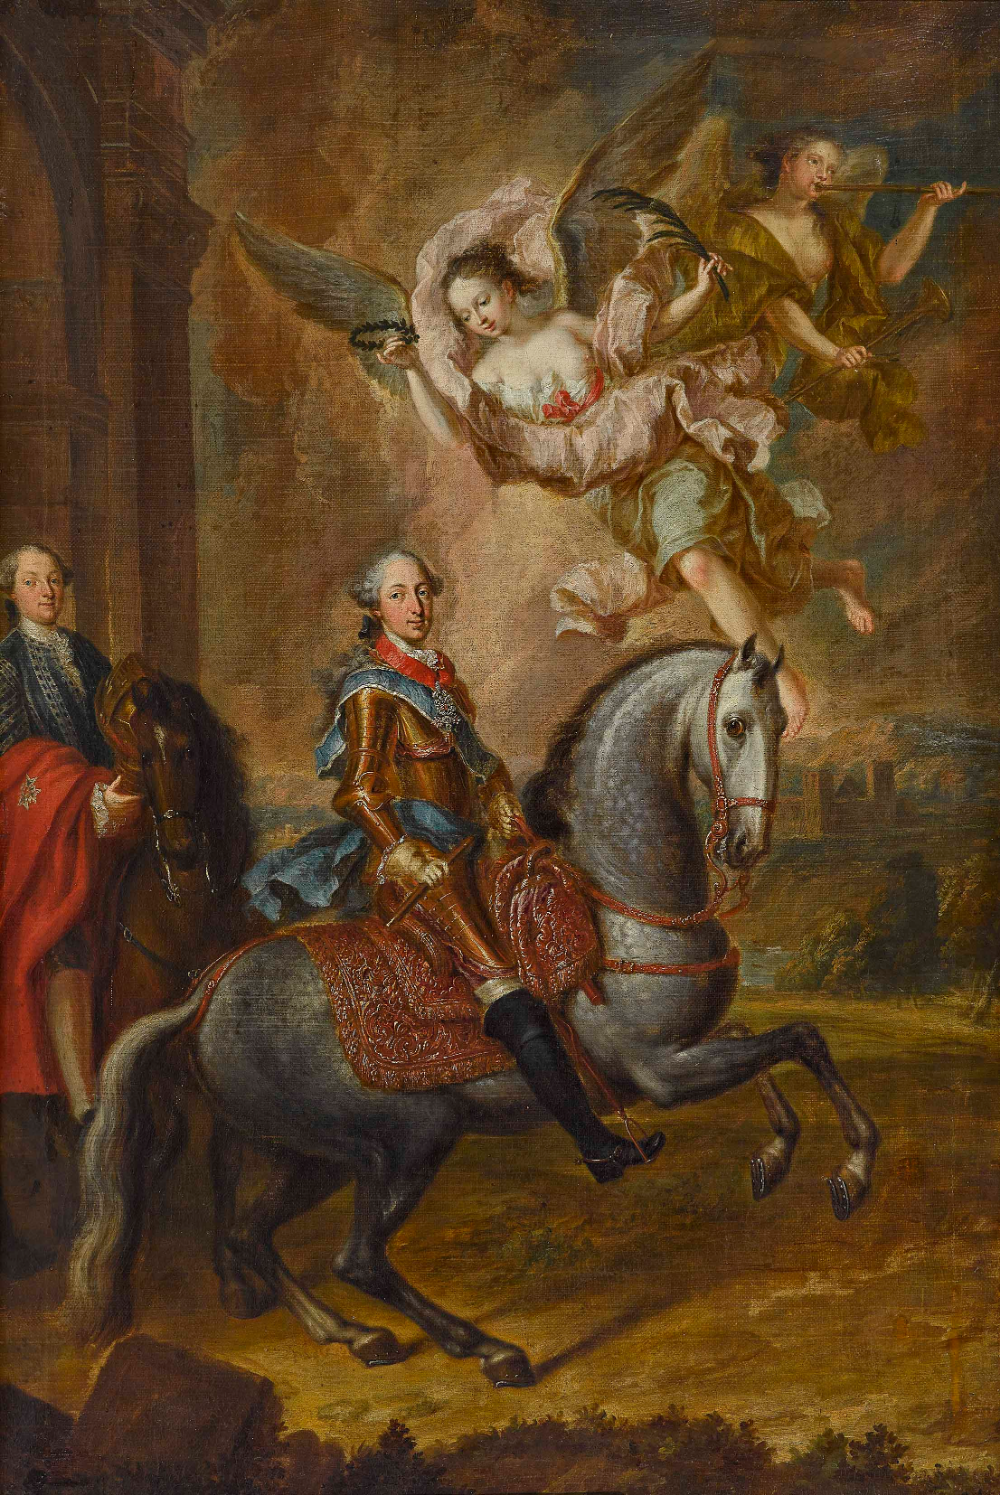 Elector Maximilian III Josef of Bavaria on horseback, 1758, Georges Desmarées, Bavaria, Germany